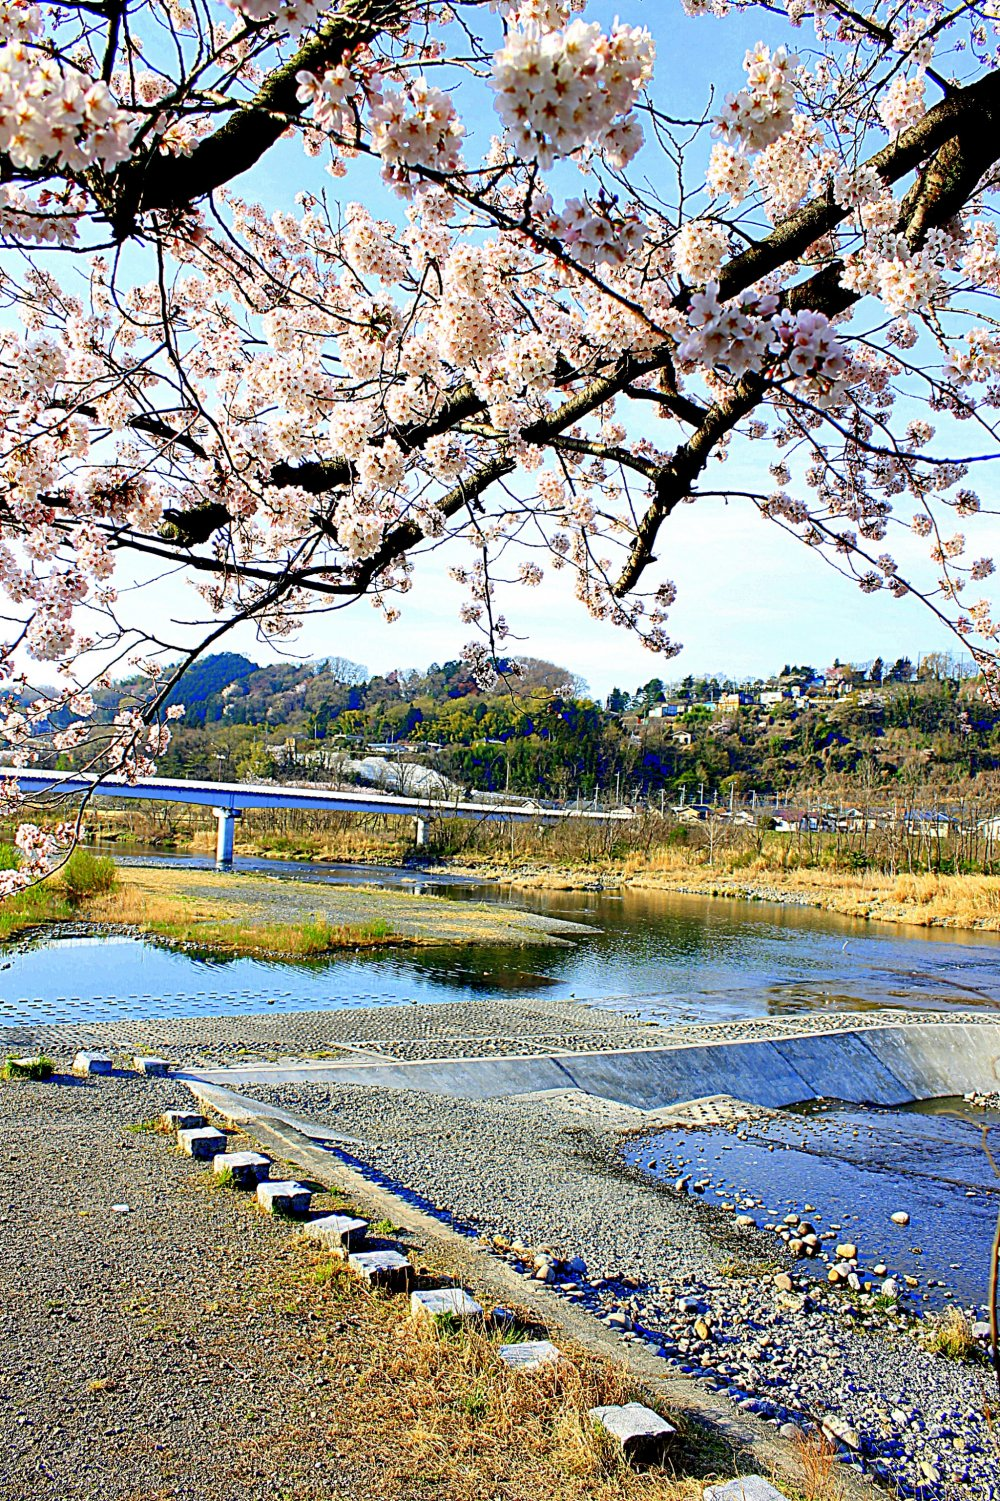 One spring morning by the Tama River, you can see the bridge from the kiosk near the Tamagawa Brothers' statue